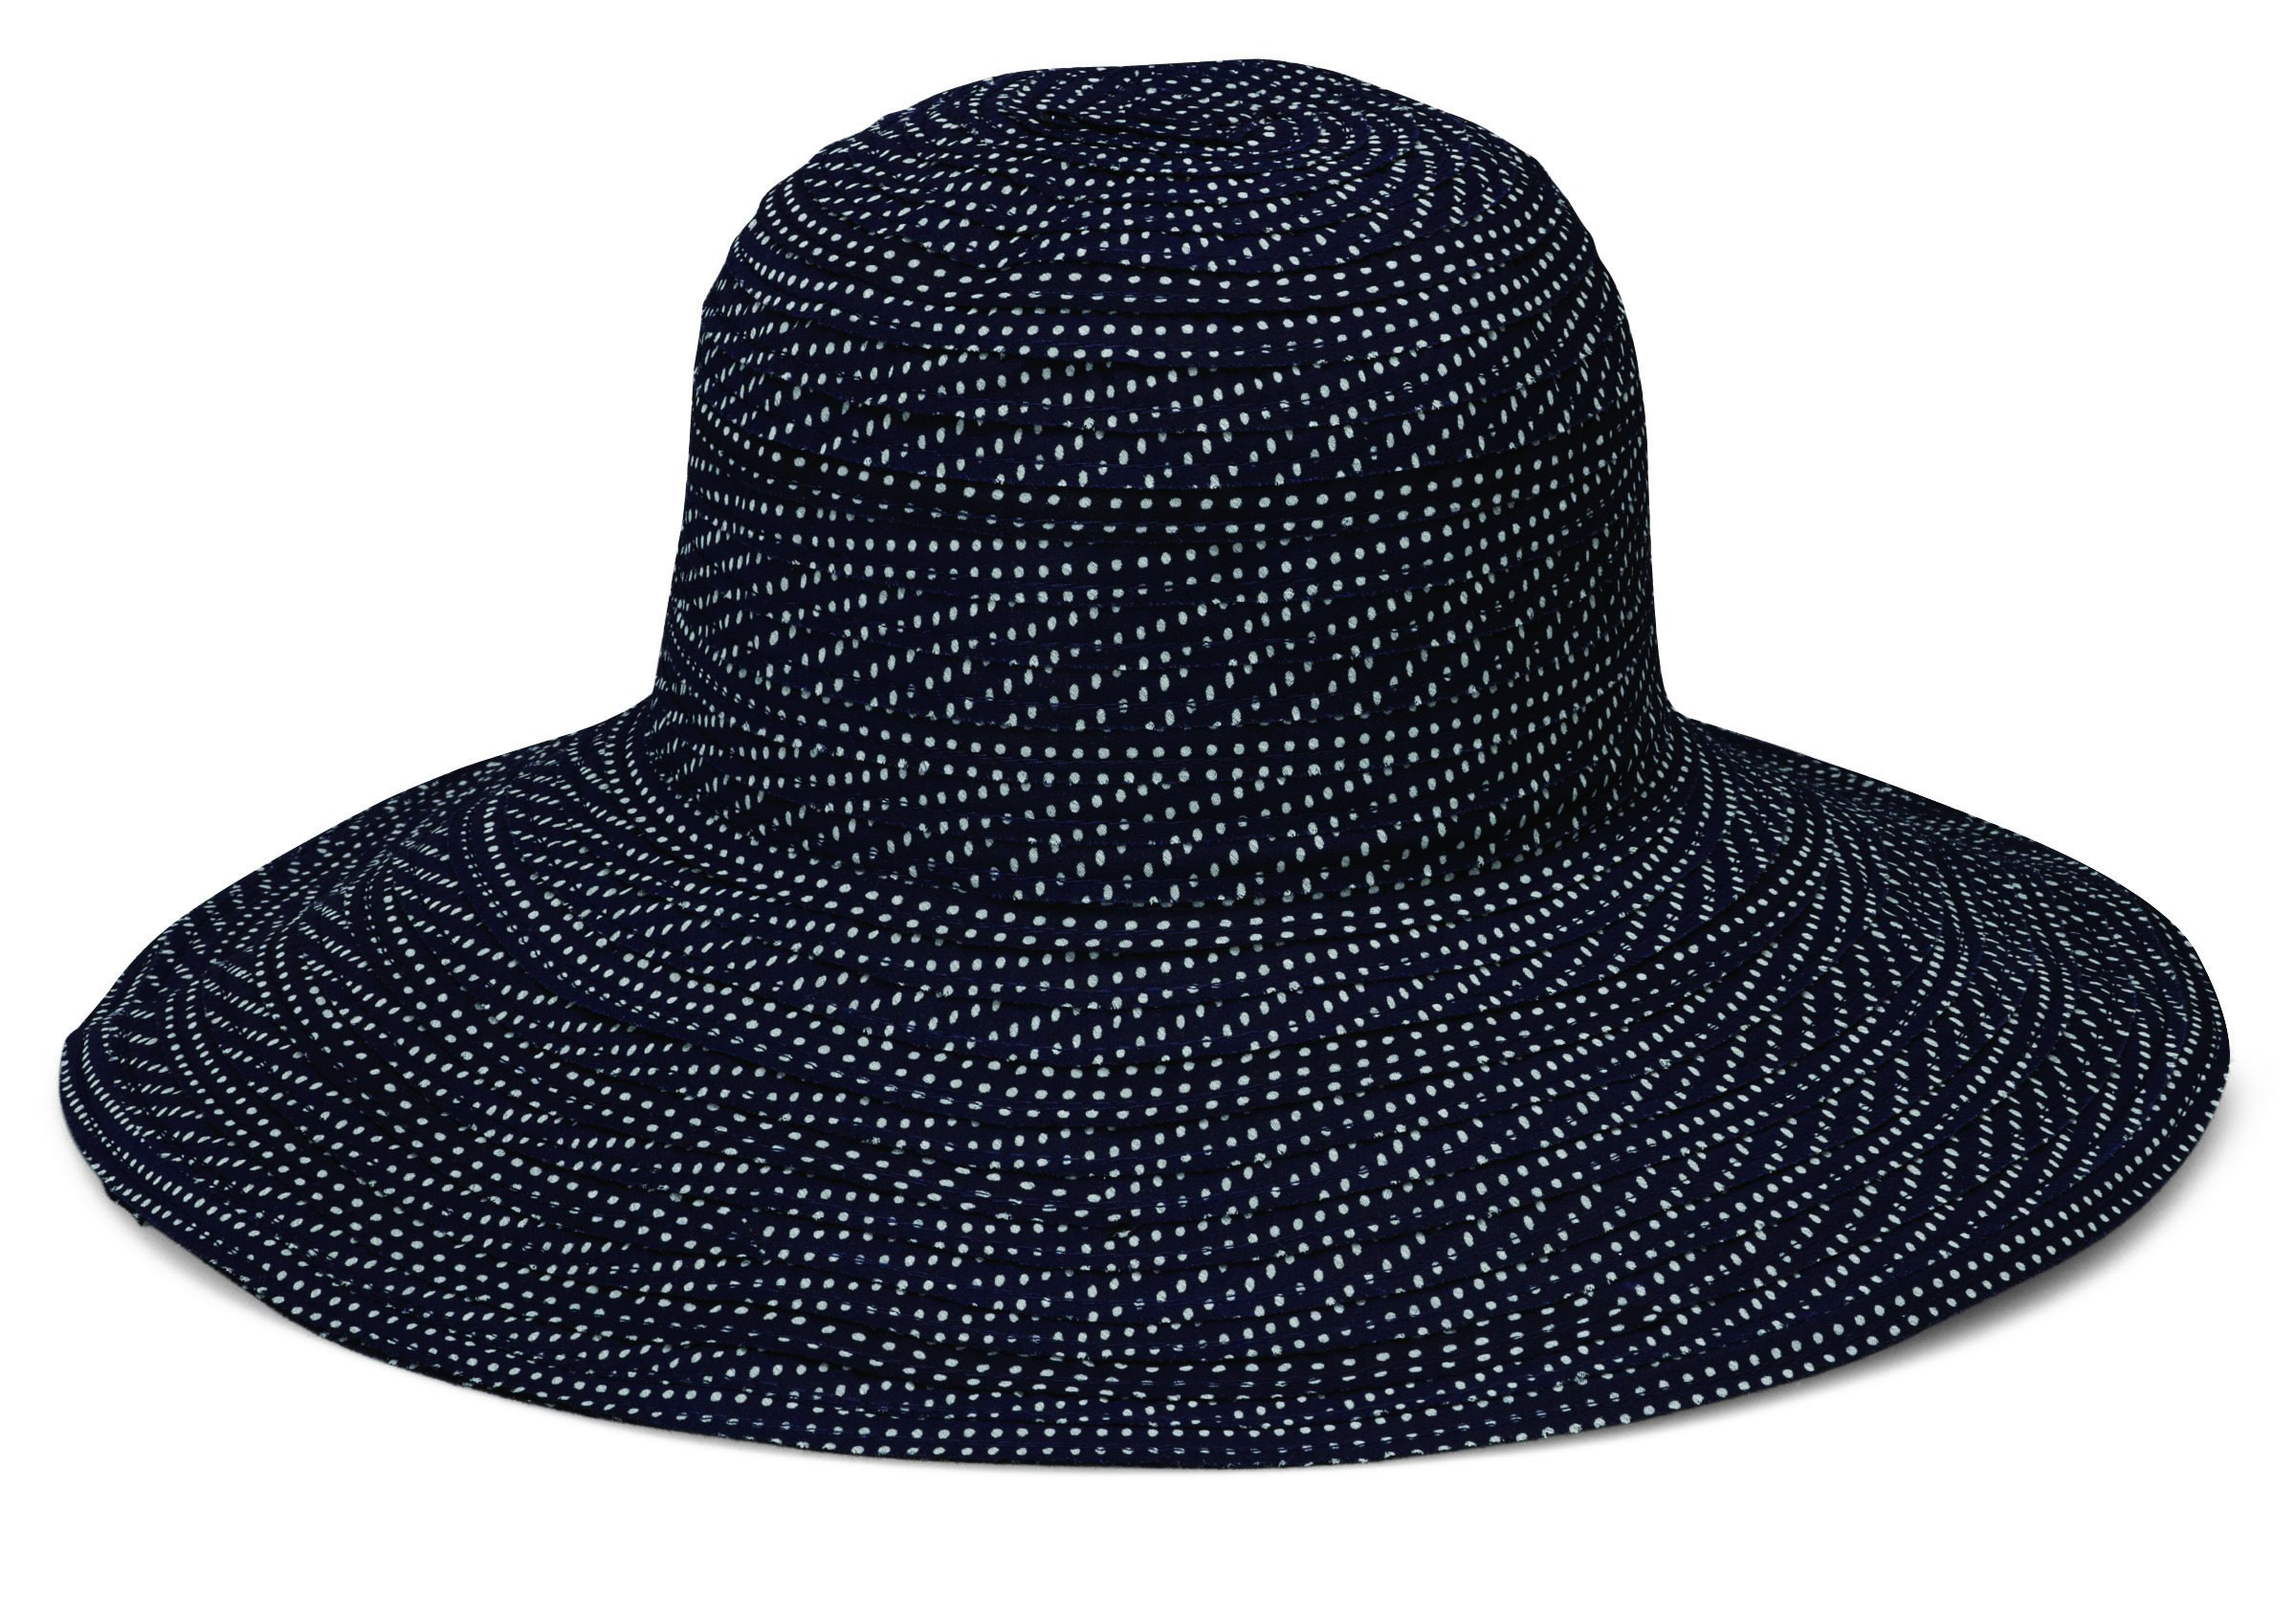 Wallaroo Hat Company Women's Scrunchie Sun Hat - Black/White Dots - UPF 50+, Ultra-Lightweight, Packable for Every Day, Designed in Australia.